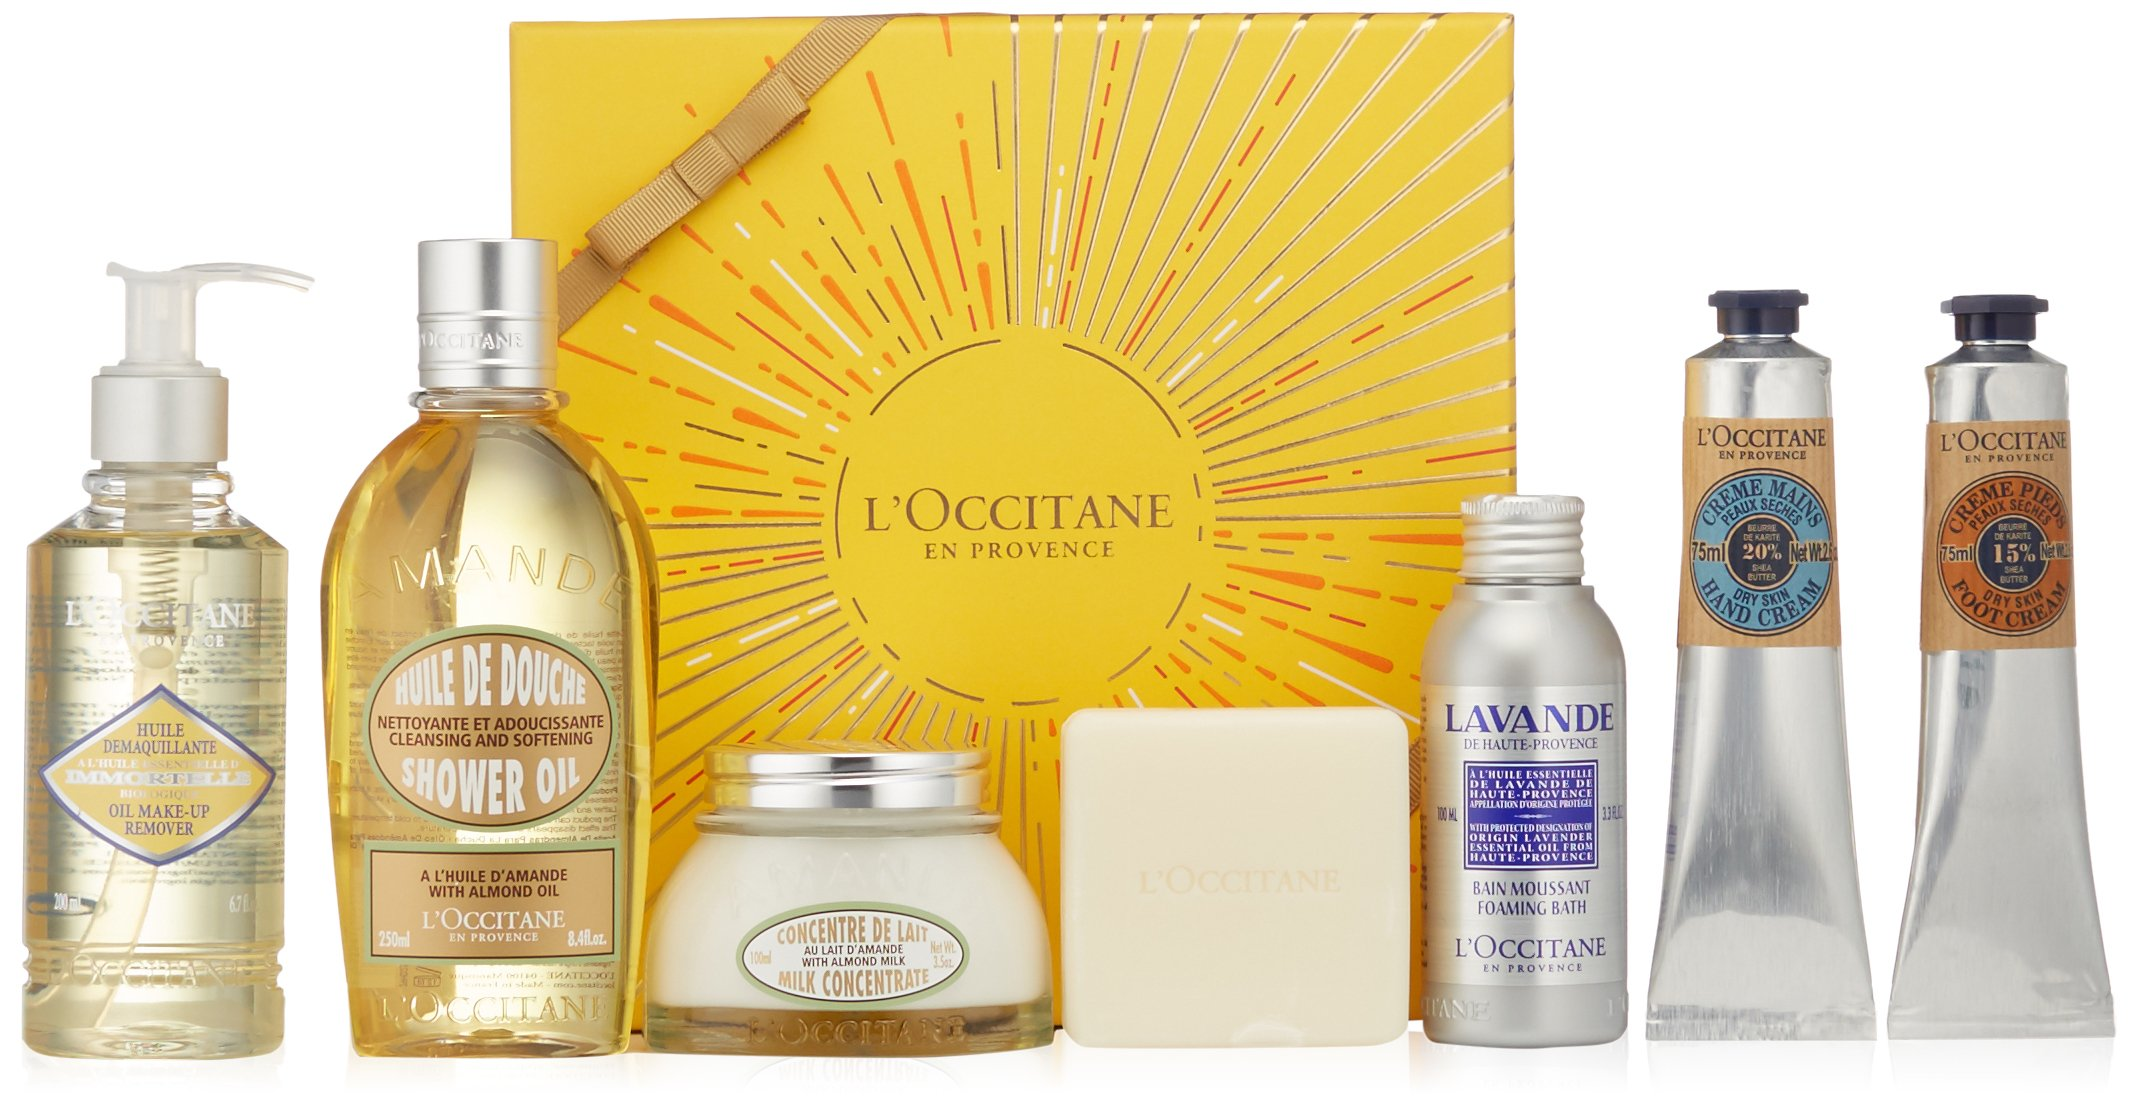 L'Occitane Customer Favorites Star Gift Set